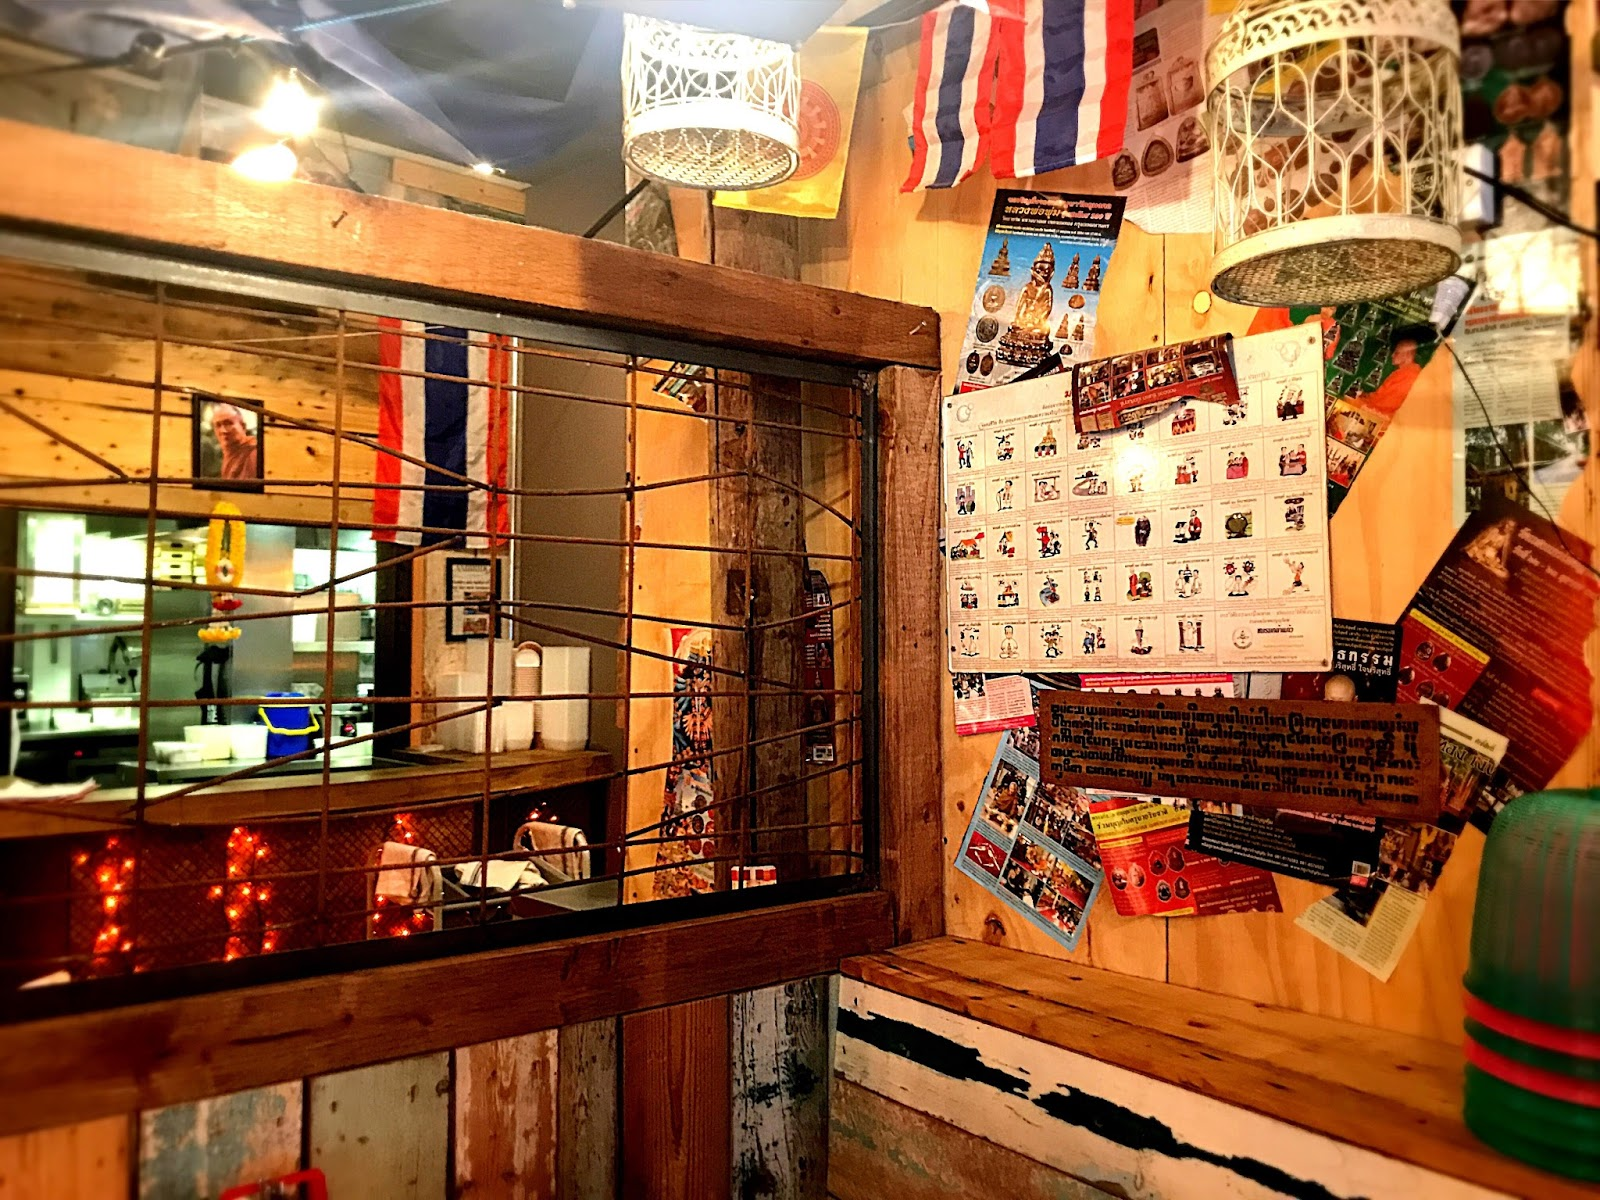 booth and walls Thaikhun